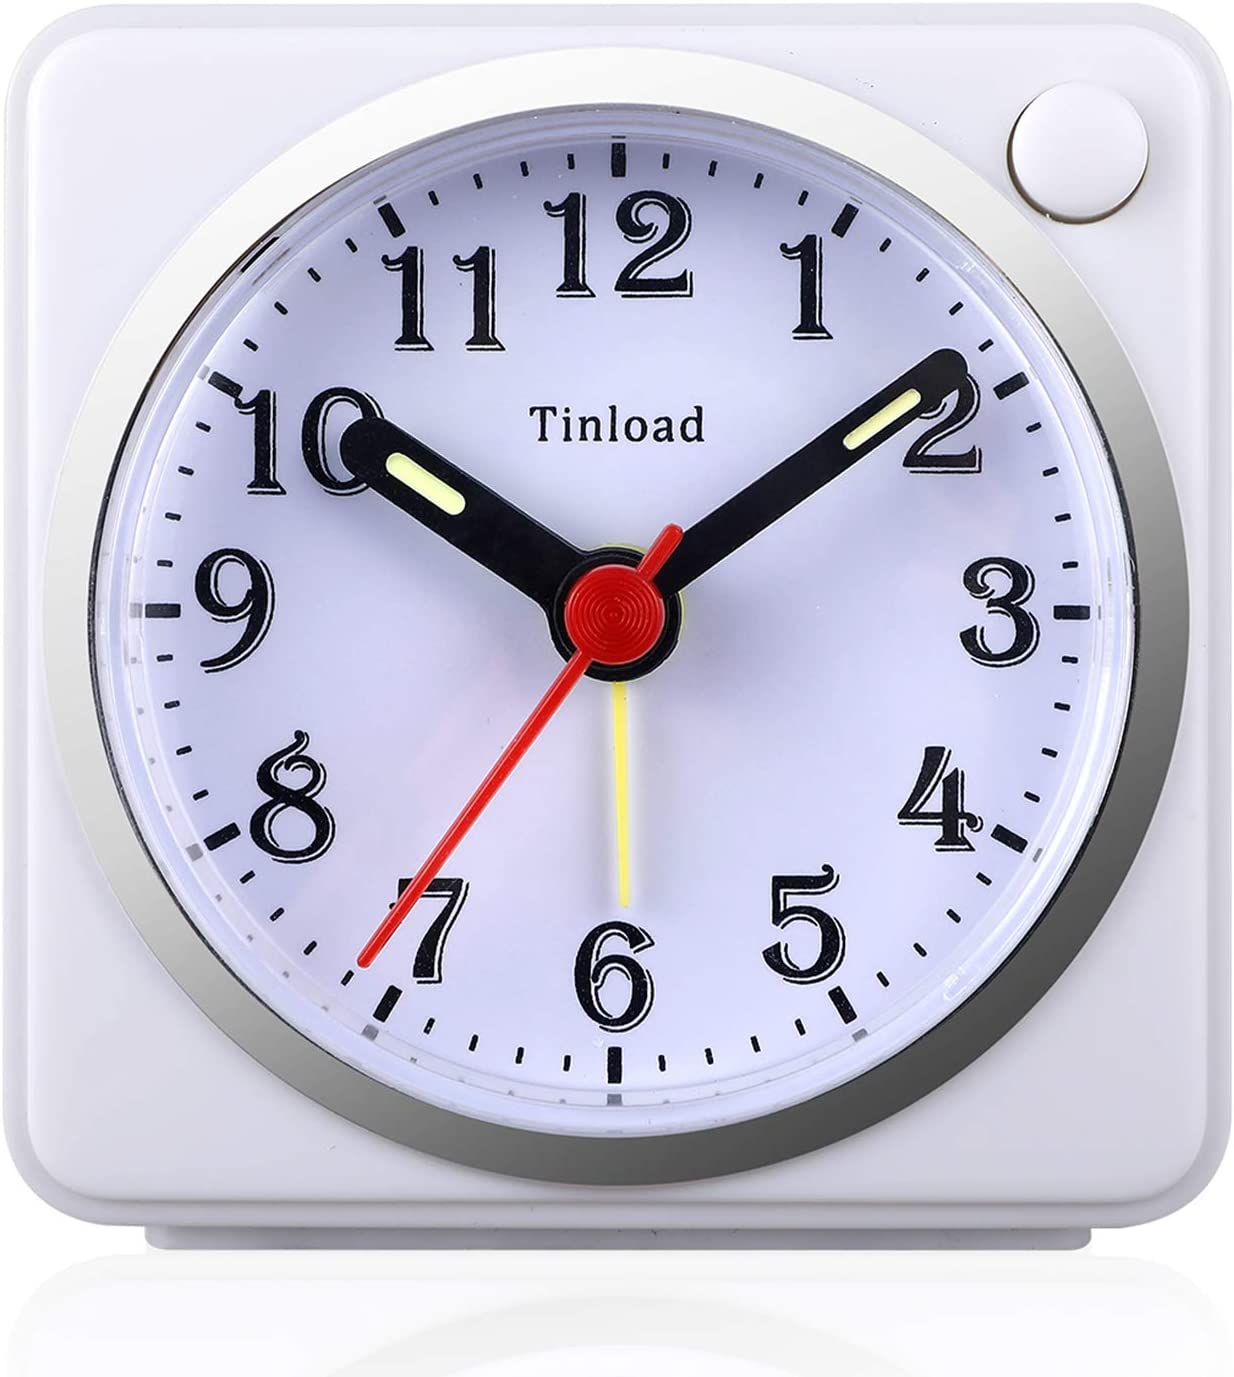 Increasing Beep Sounds Silent Non Ticking Tinload Analog Alarm Clock for Kids Telling Time Teaching Design Battery Operated Snooze and Light Functions Red